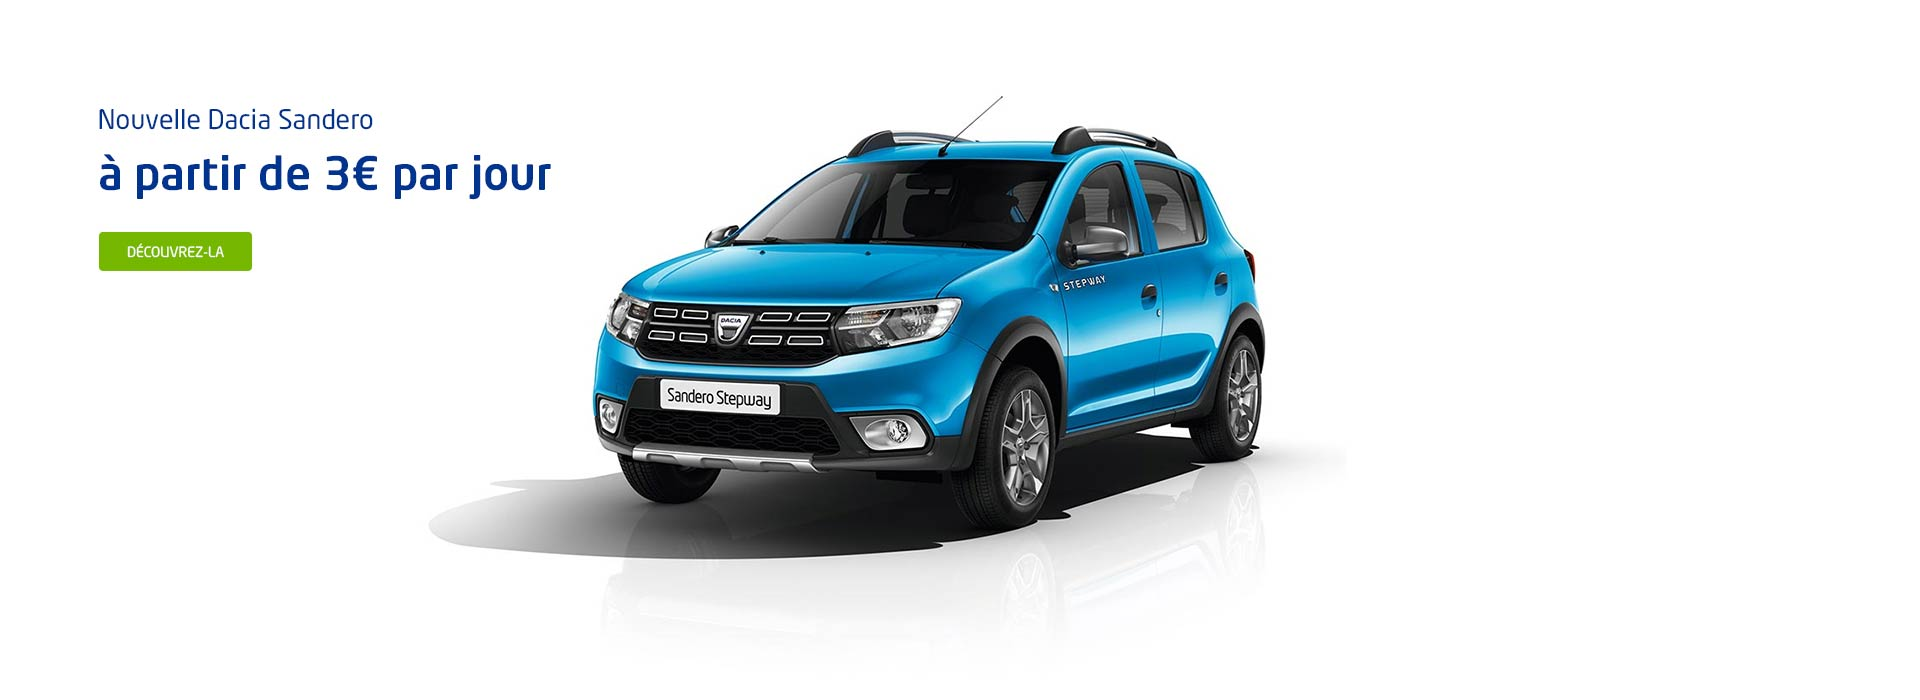 Dacia soissons concessionnaire garage aisne 02 for Garage seat soissons